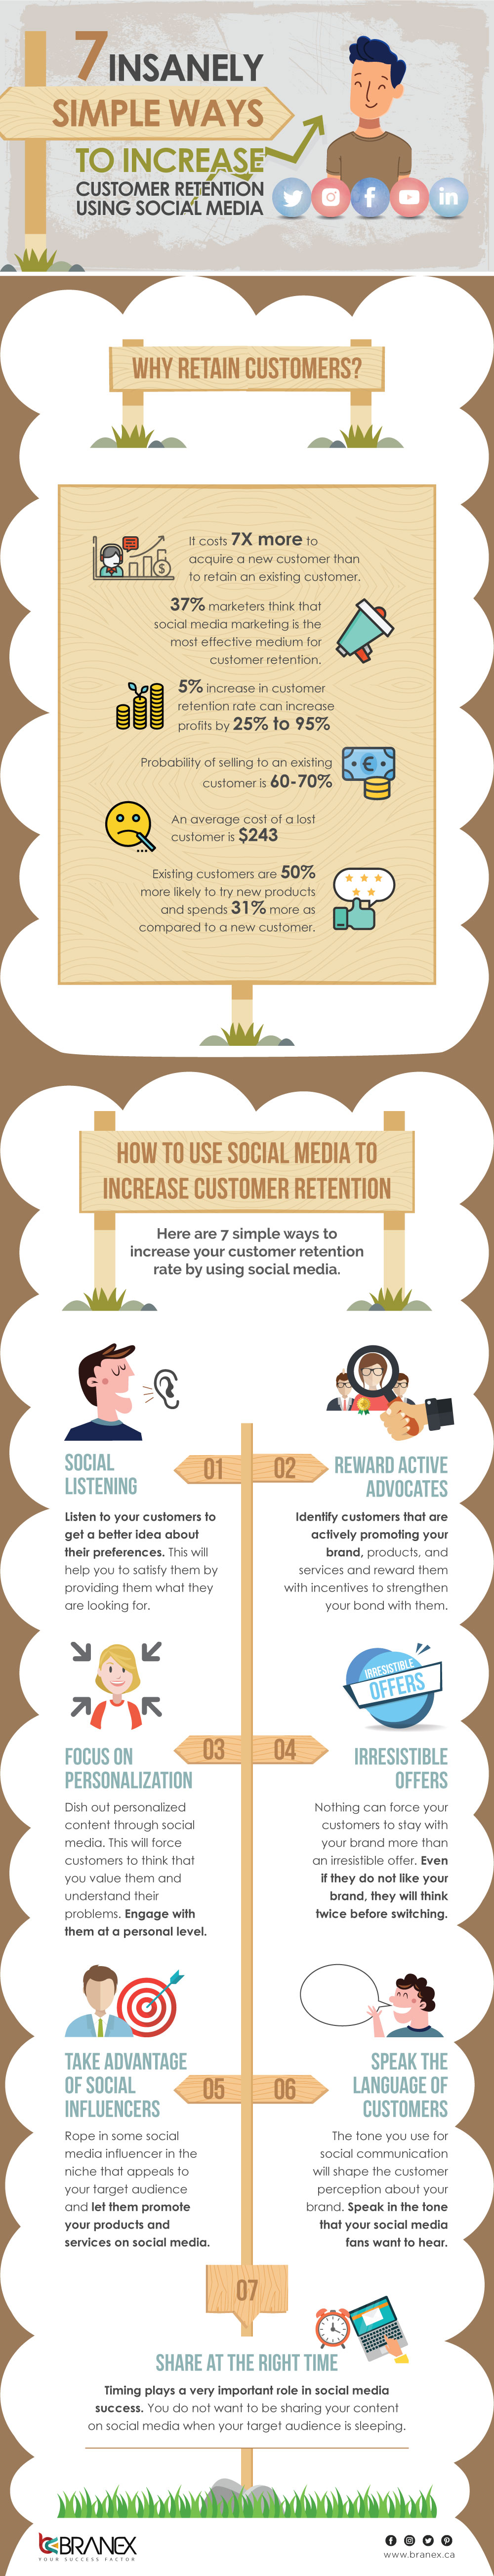 How To Increase Customer Retention Using Social Media